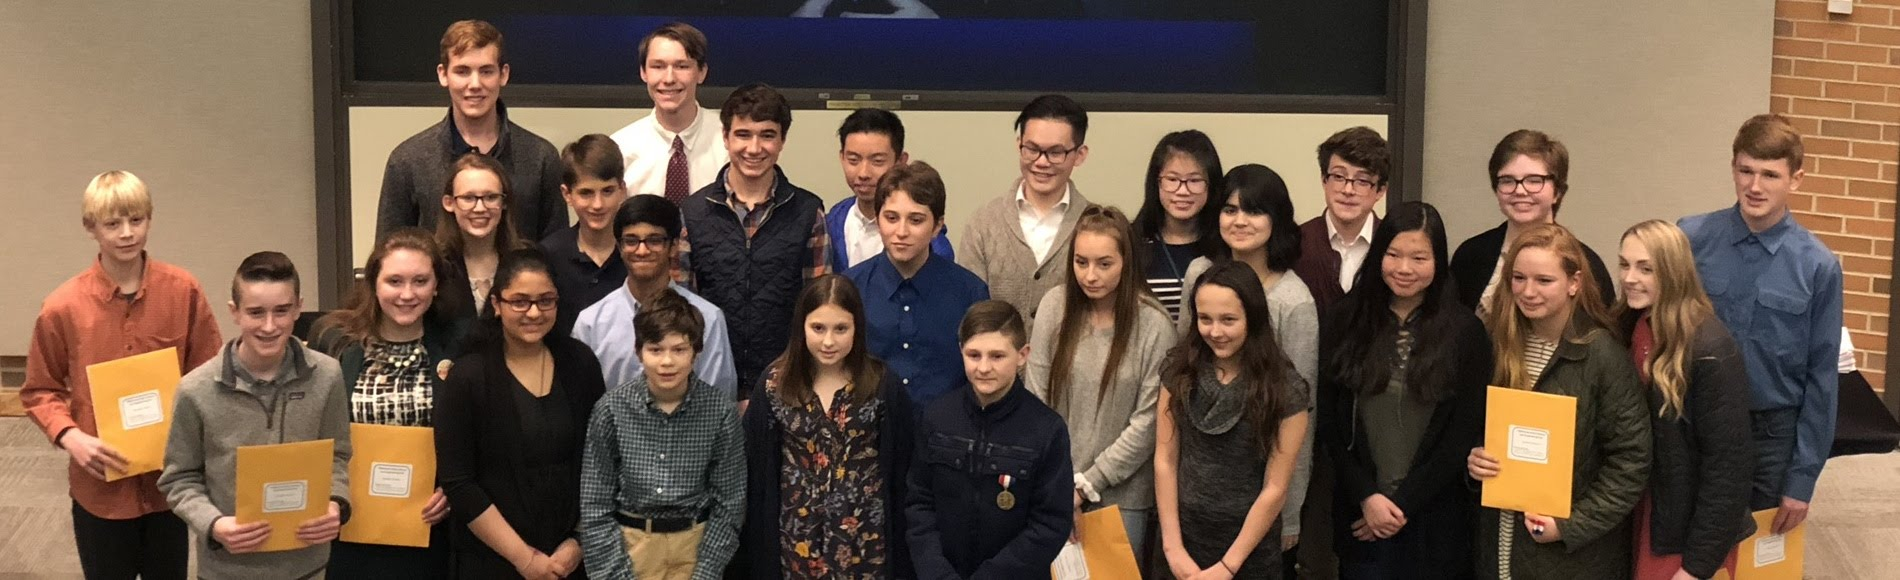 State Science Fair Attendees